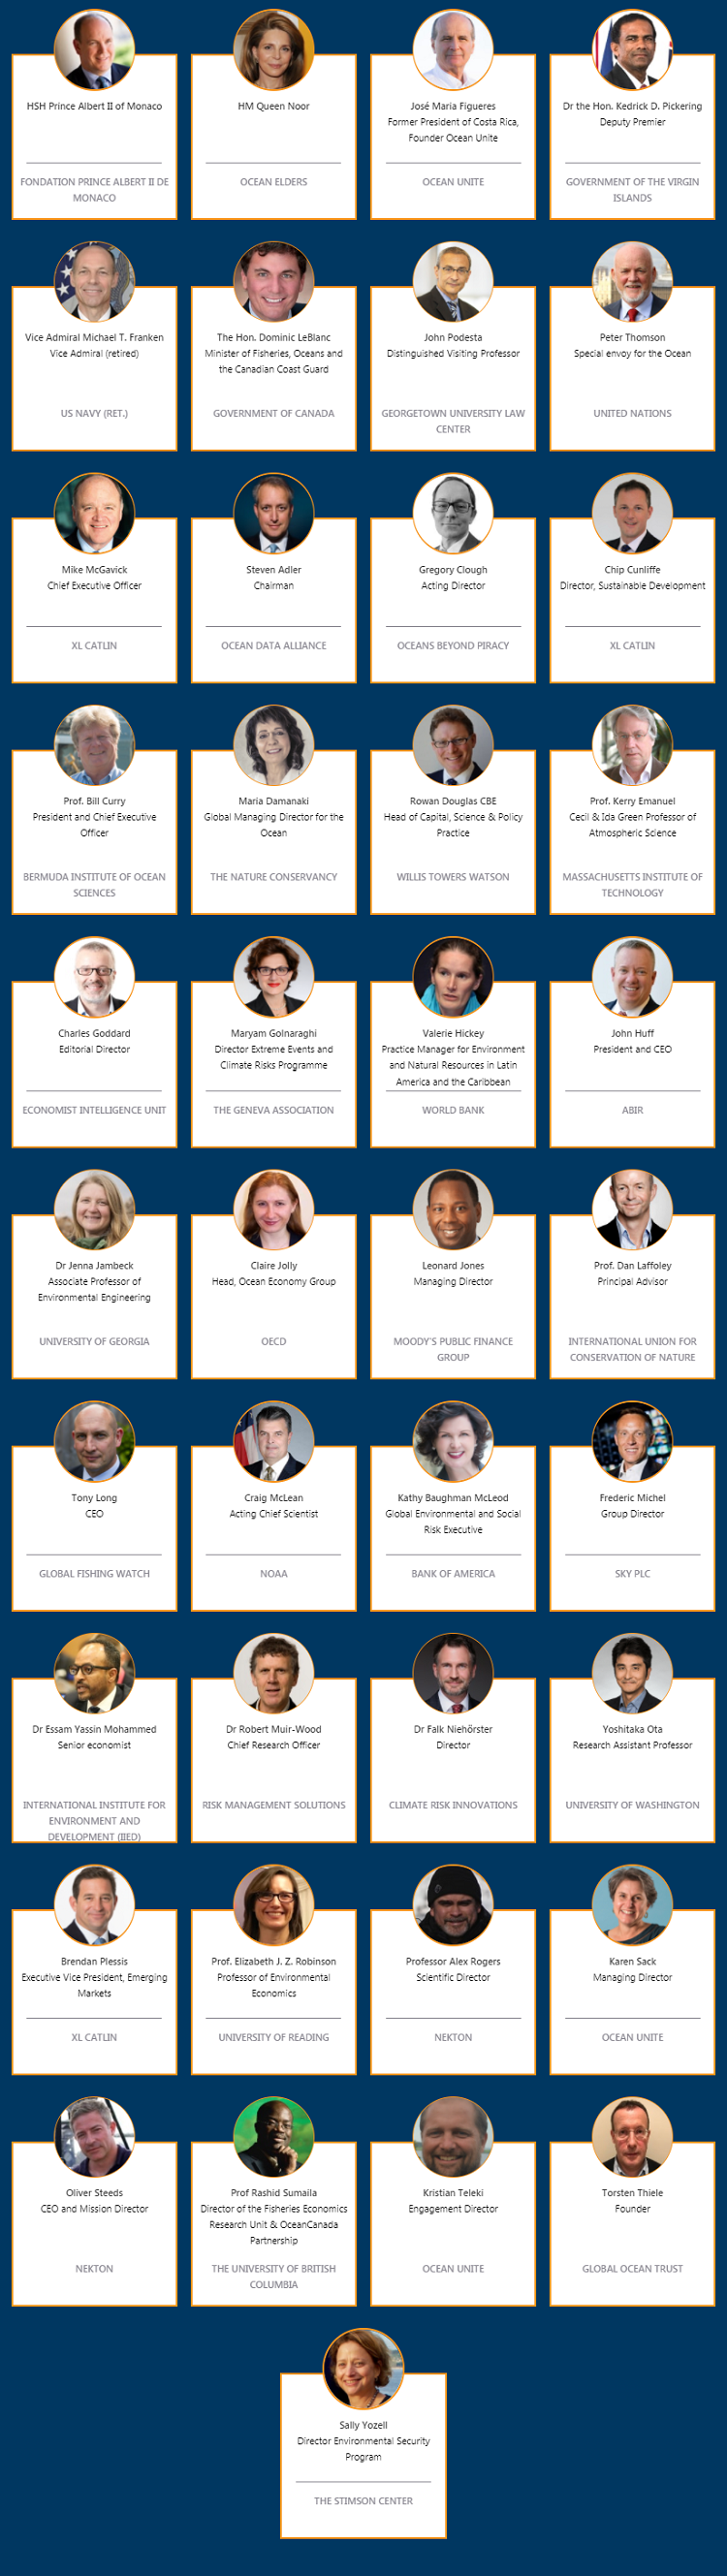 speakers 2018 Bermuda Ocean Risk Summit